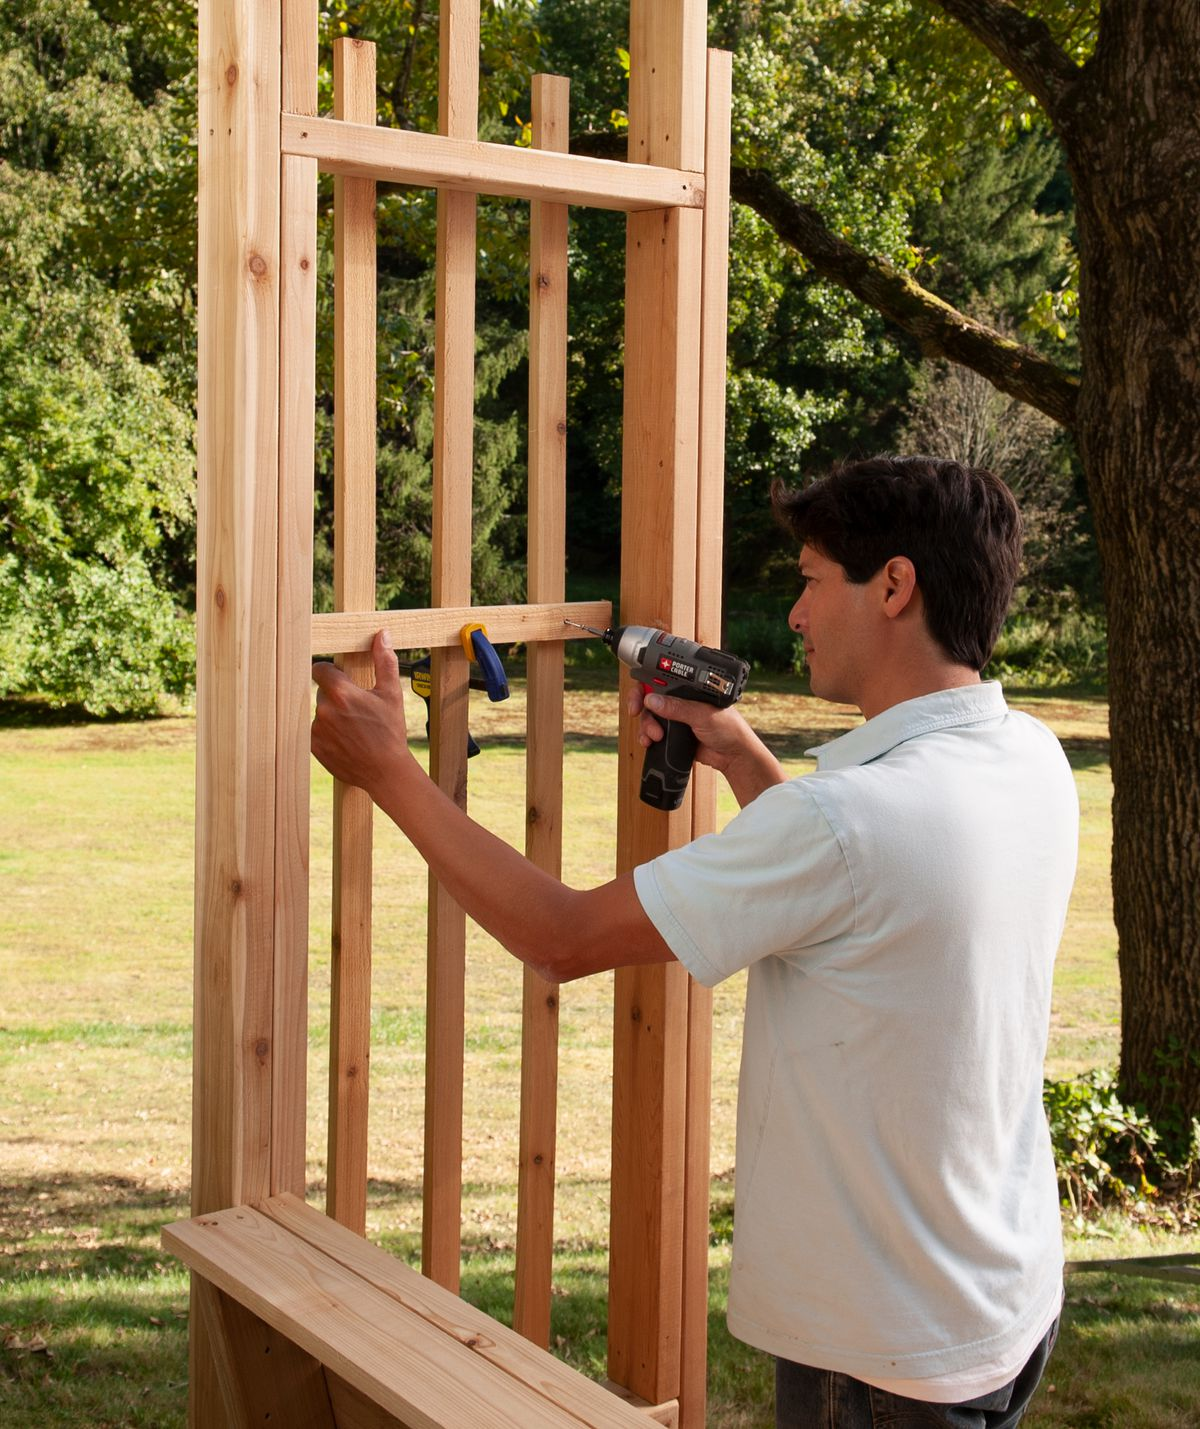 Man Cuts And Installs Horizontal Wood Strips Of Arbor Bench